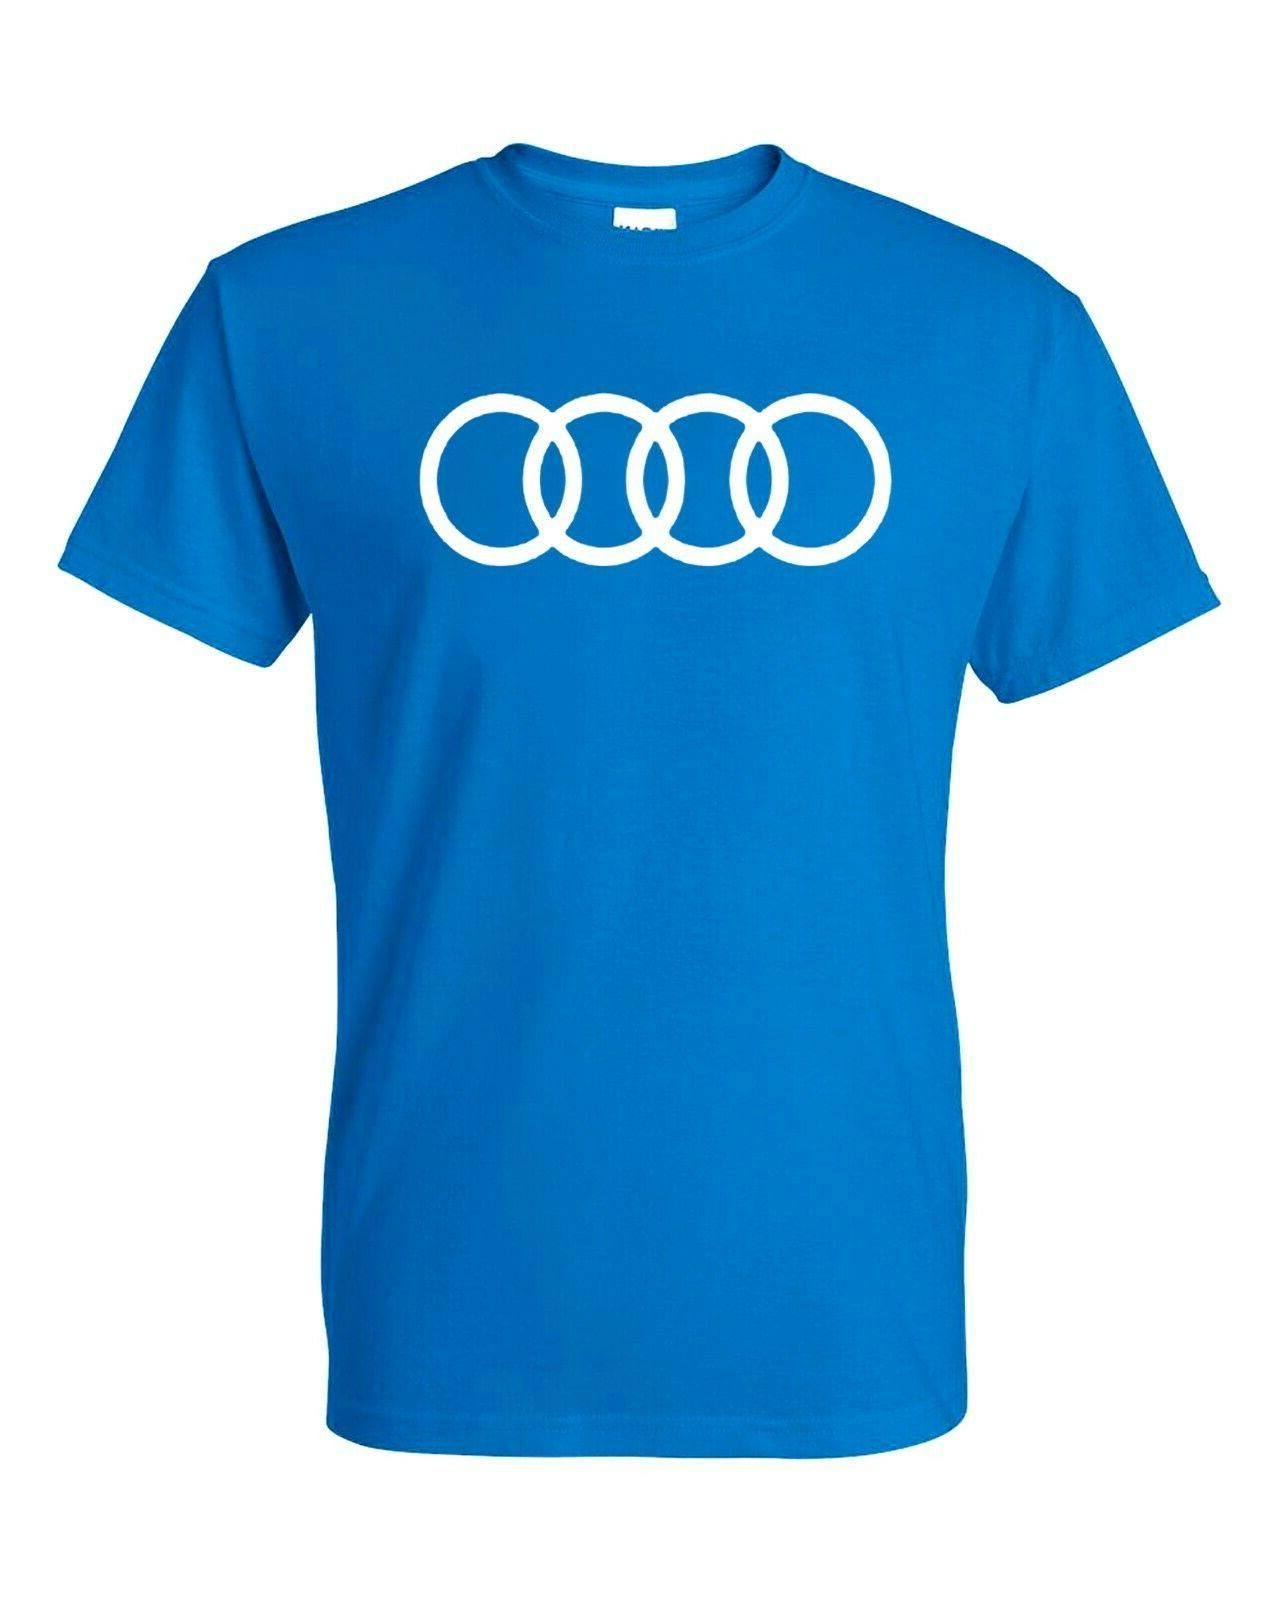 Audi and Youth